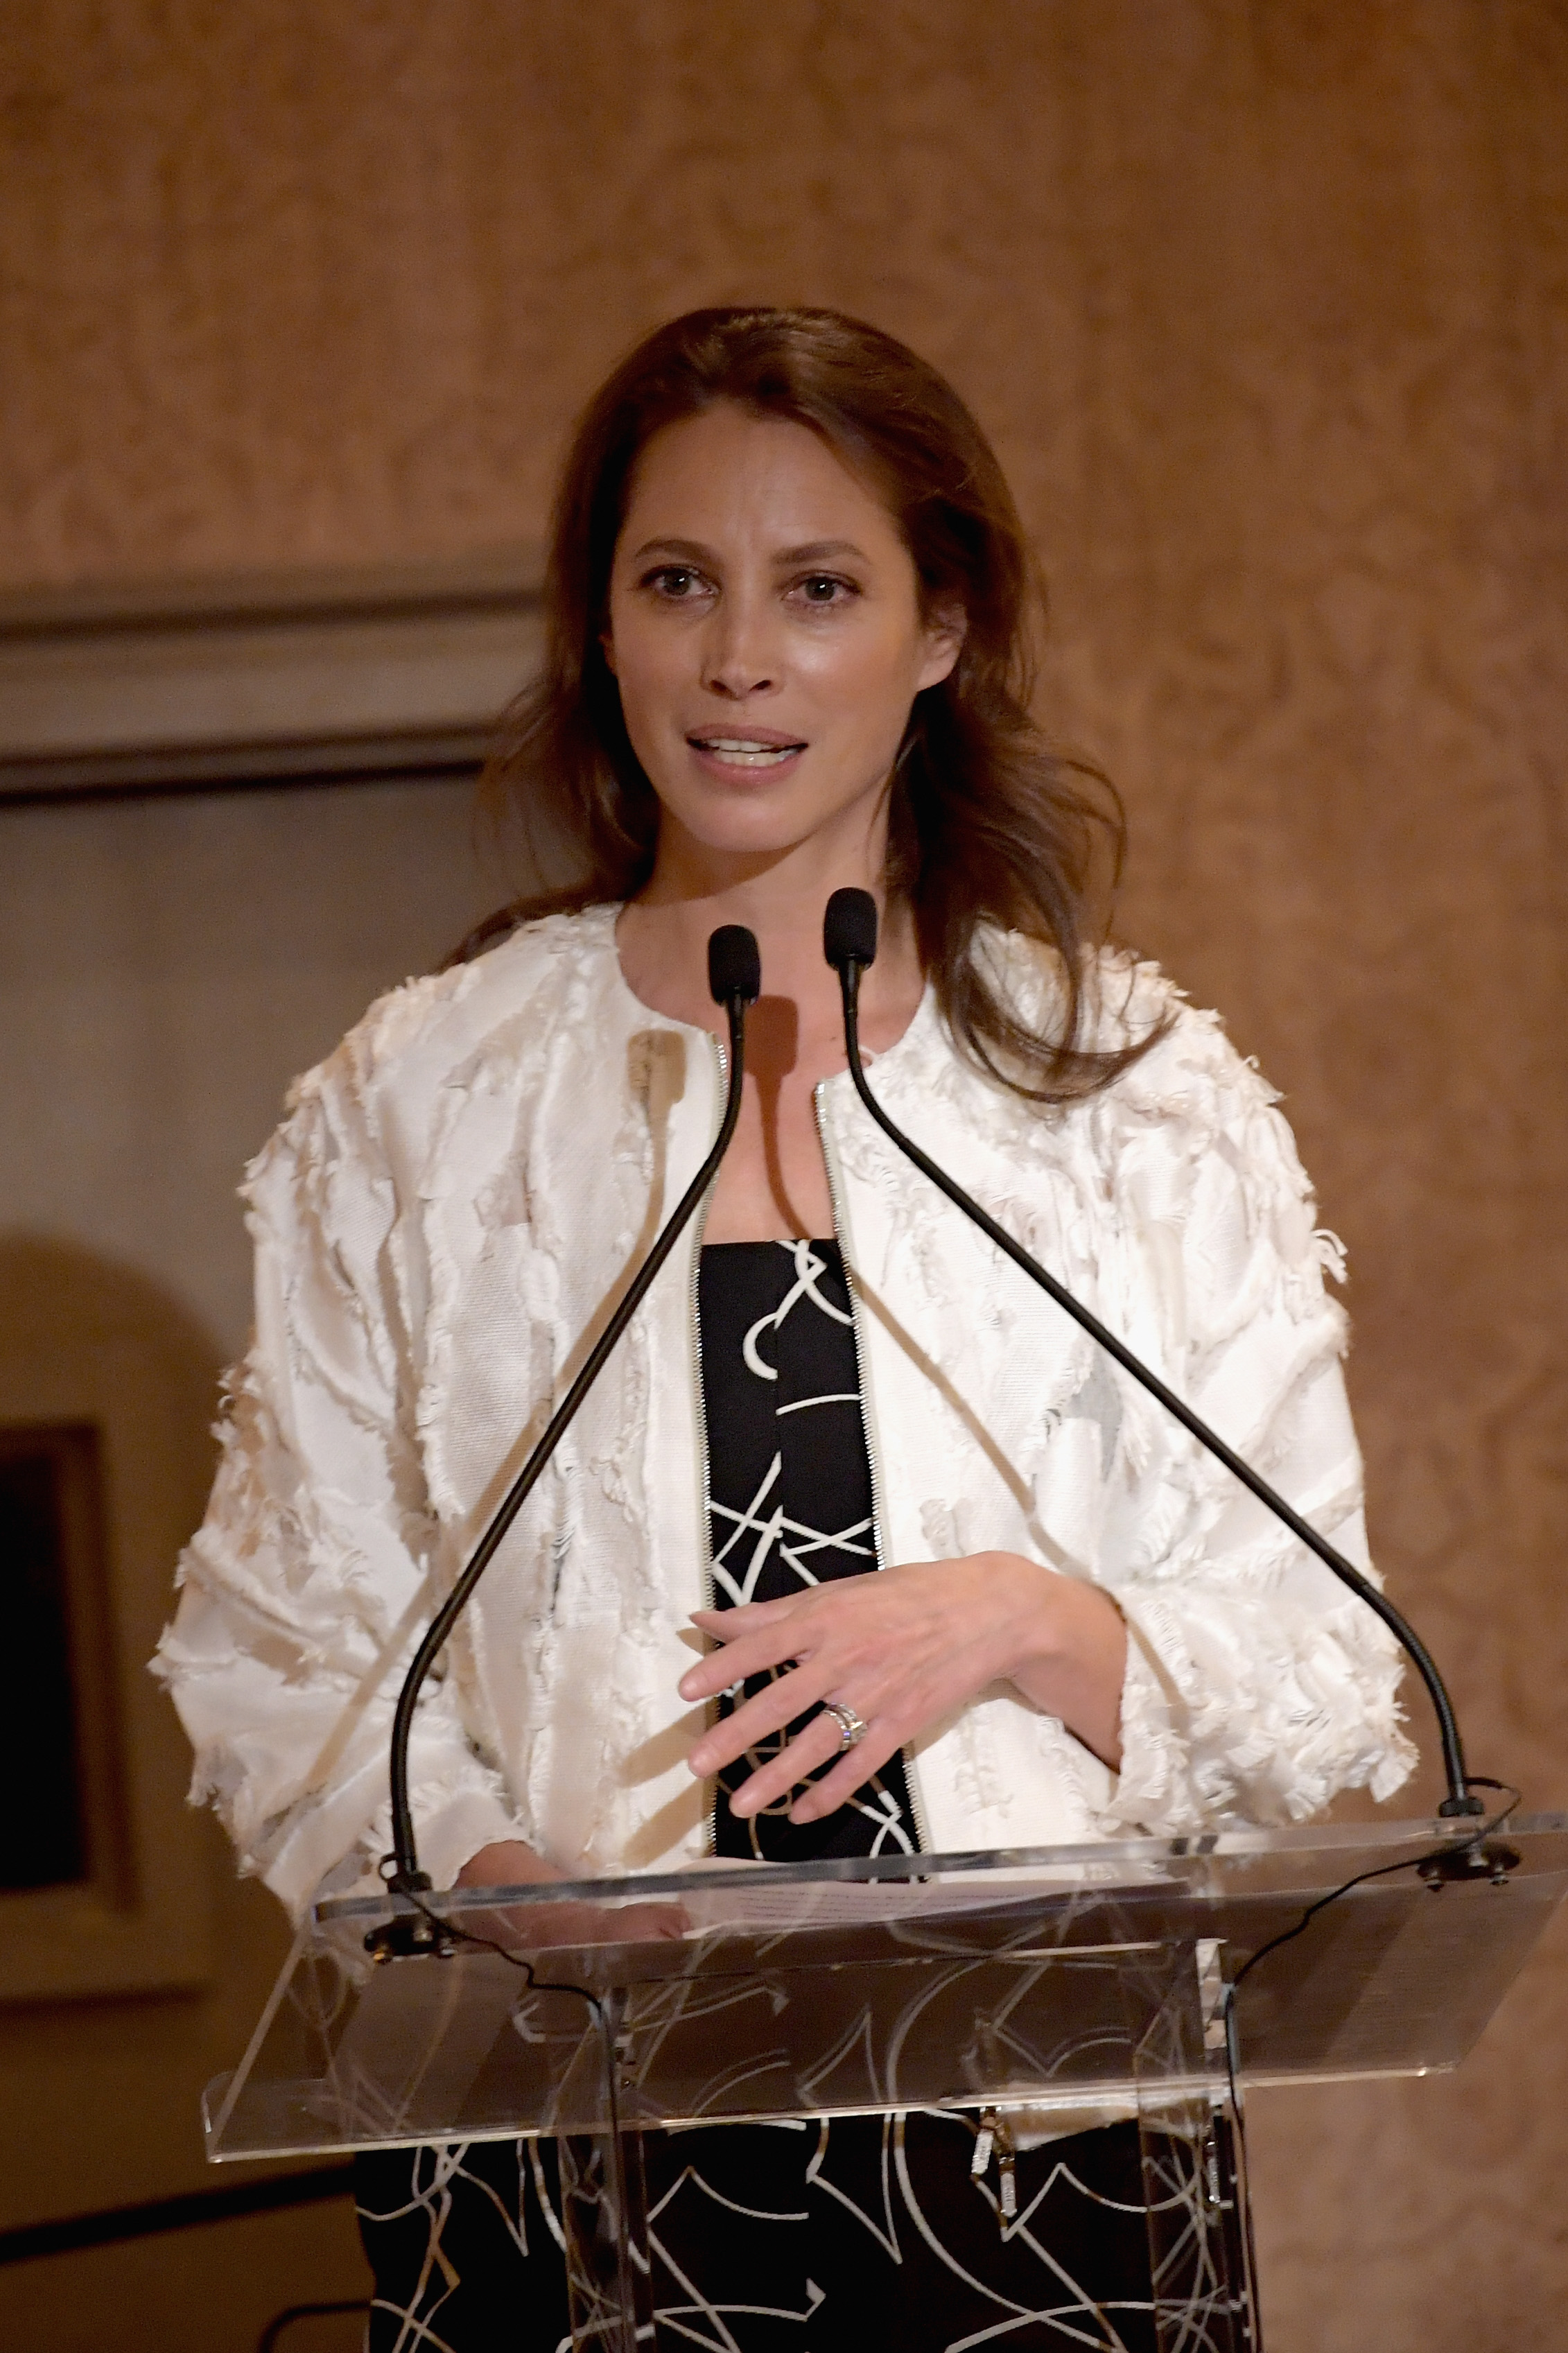 GREENWICH, CT - JUNE 01:  Christy Turlington speaks on stage during the Changemaker Honoree Gala during the Greenwich International Film Festival on June 1, 2017 in Greenwich, Connecticut.  (Photo by Ben Gabbe/Getty Images for Greenwich International Film Festival)